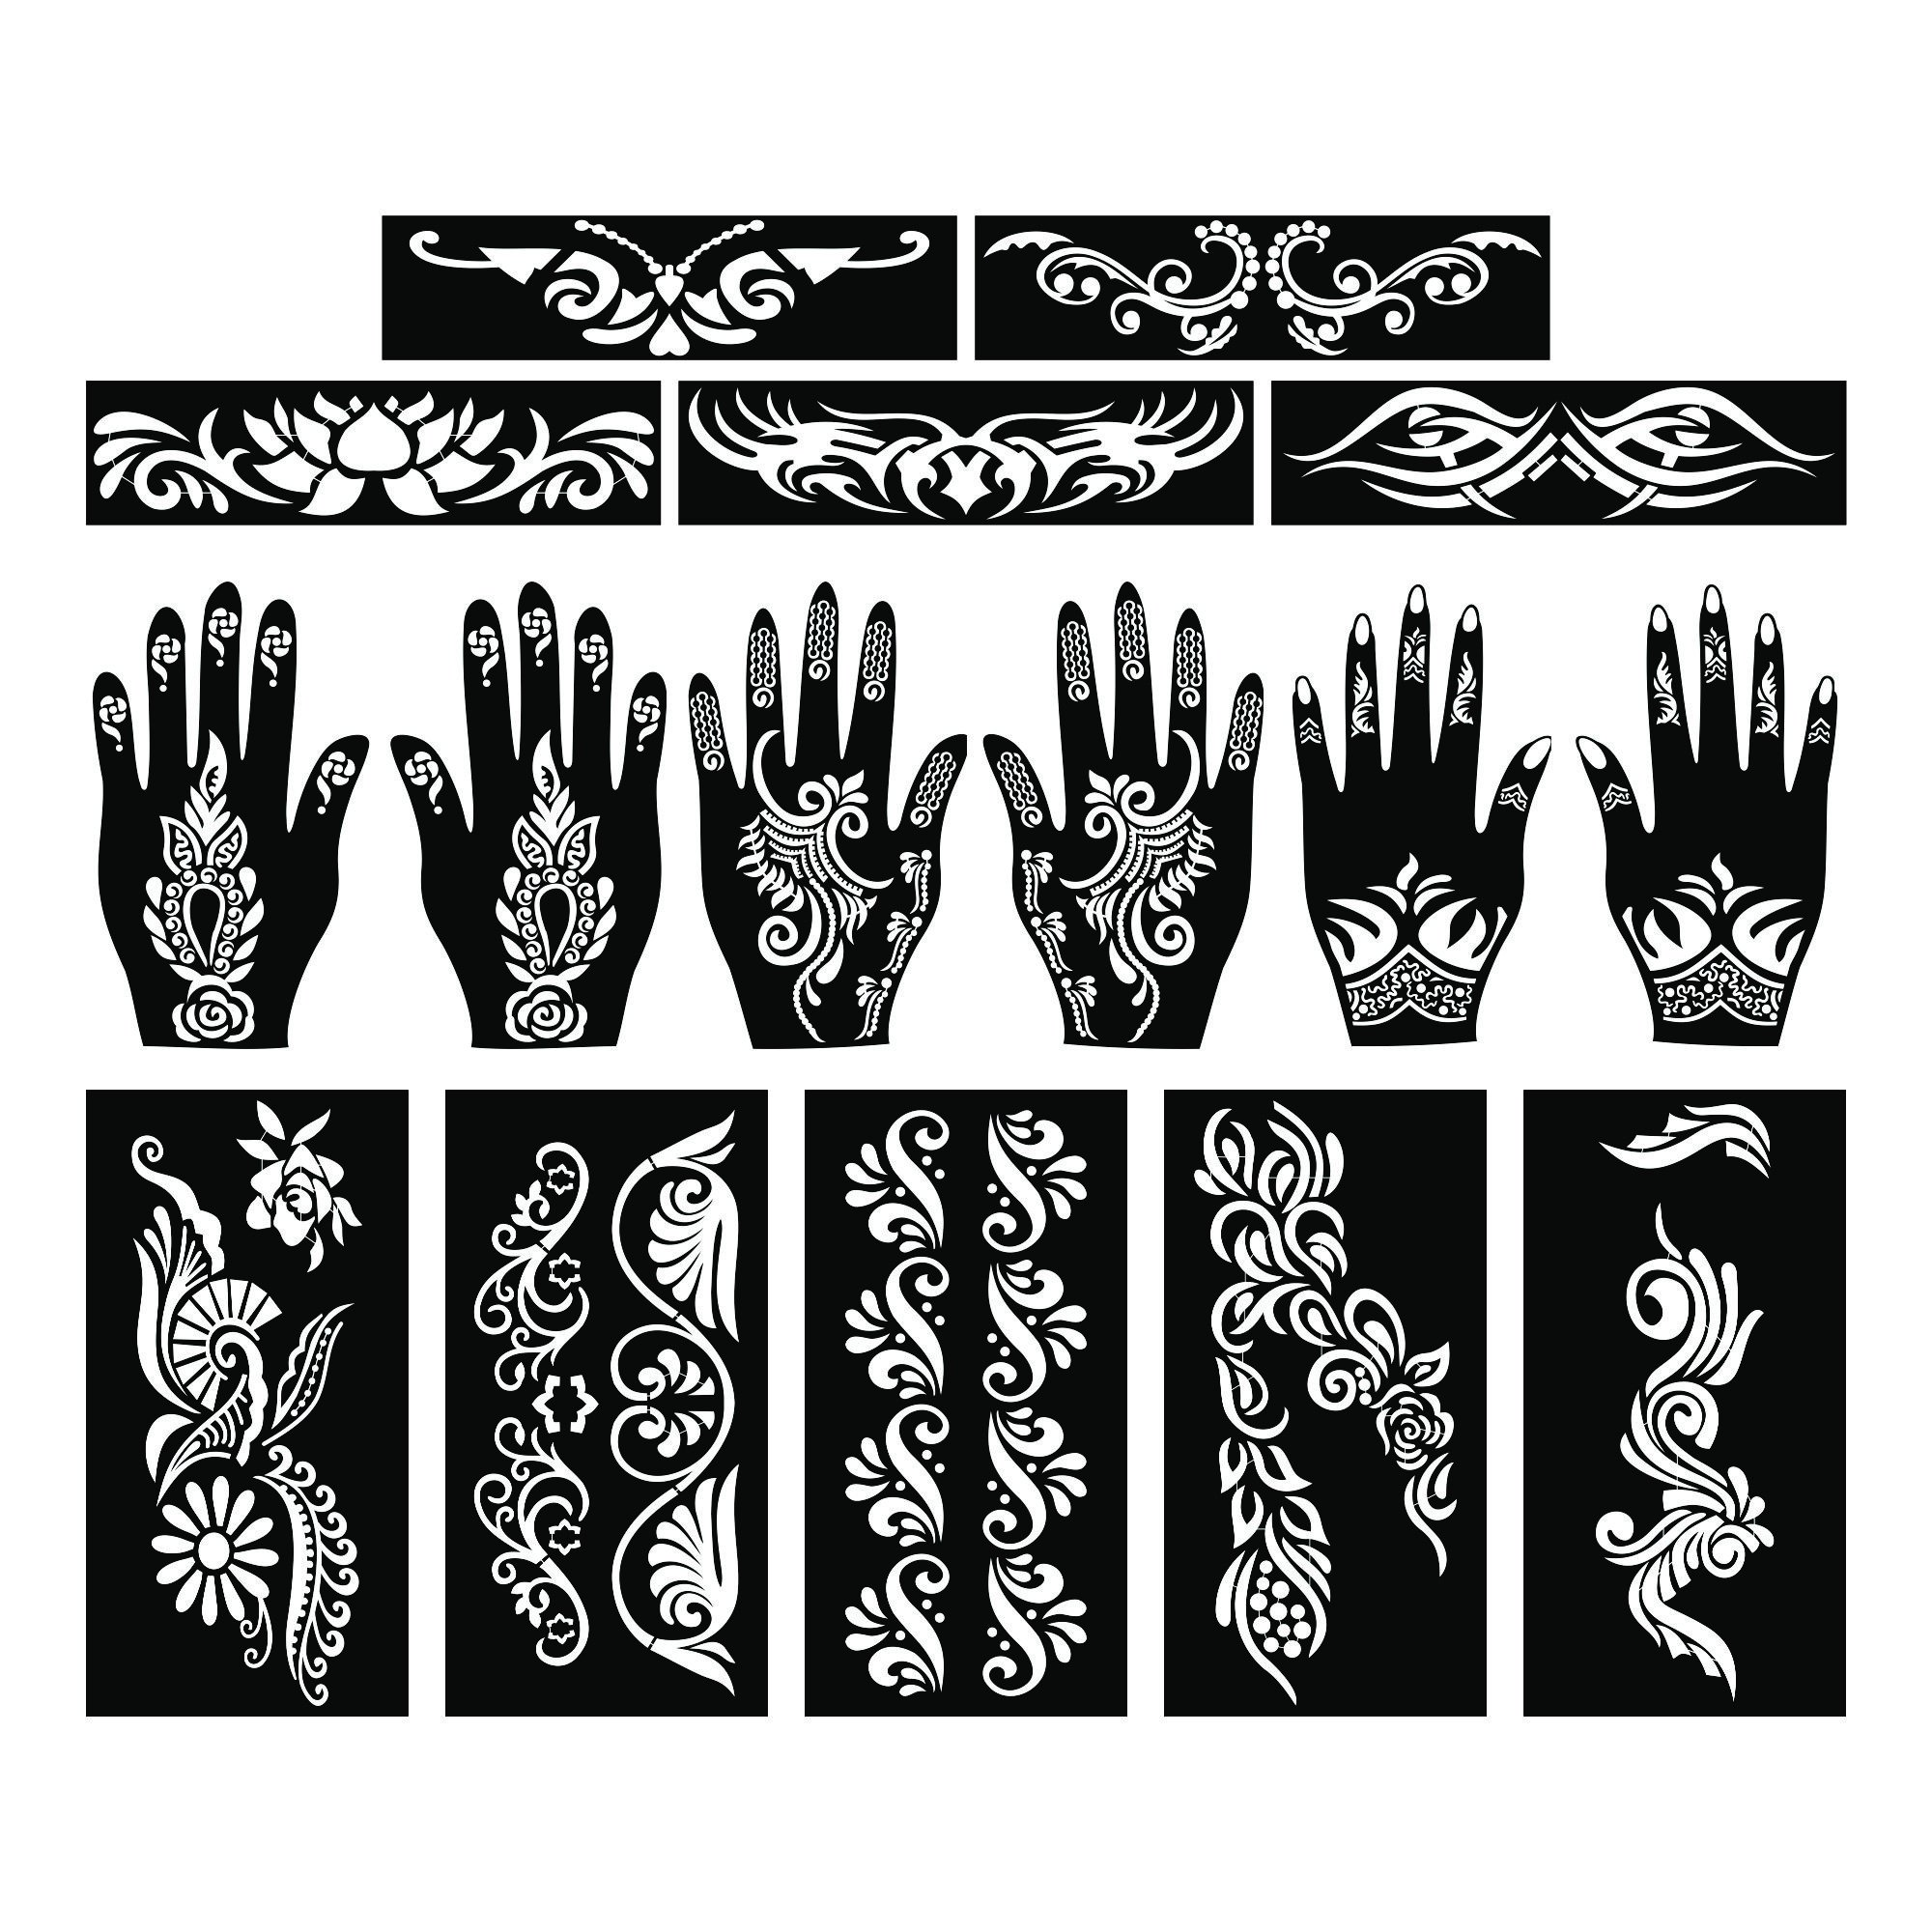 Henna Tattoo Kaufen Amazon: Amazon.com : PARTH IMPEX Henna Tattoo Stencils (Pack Of 15